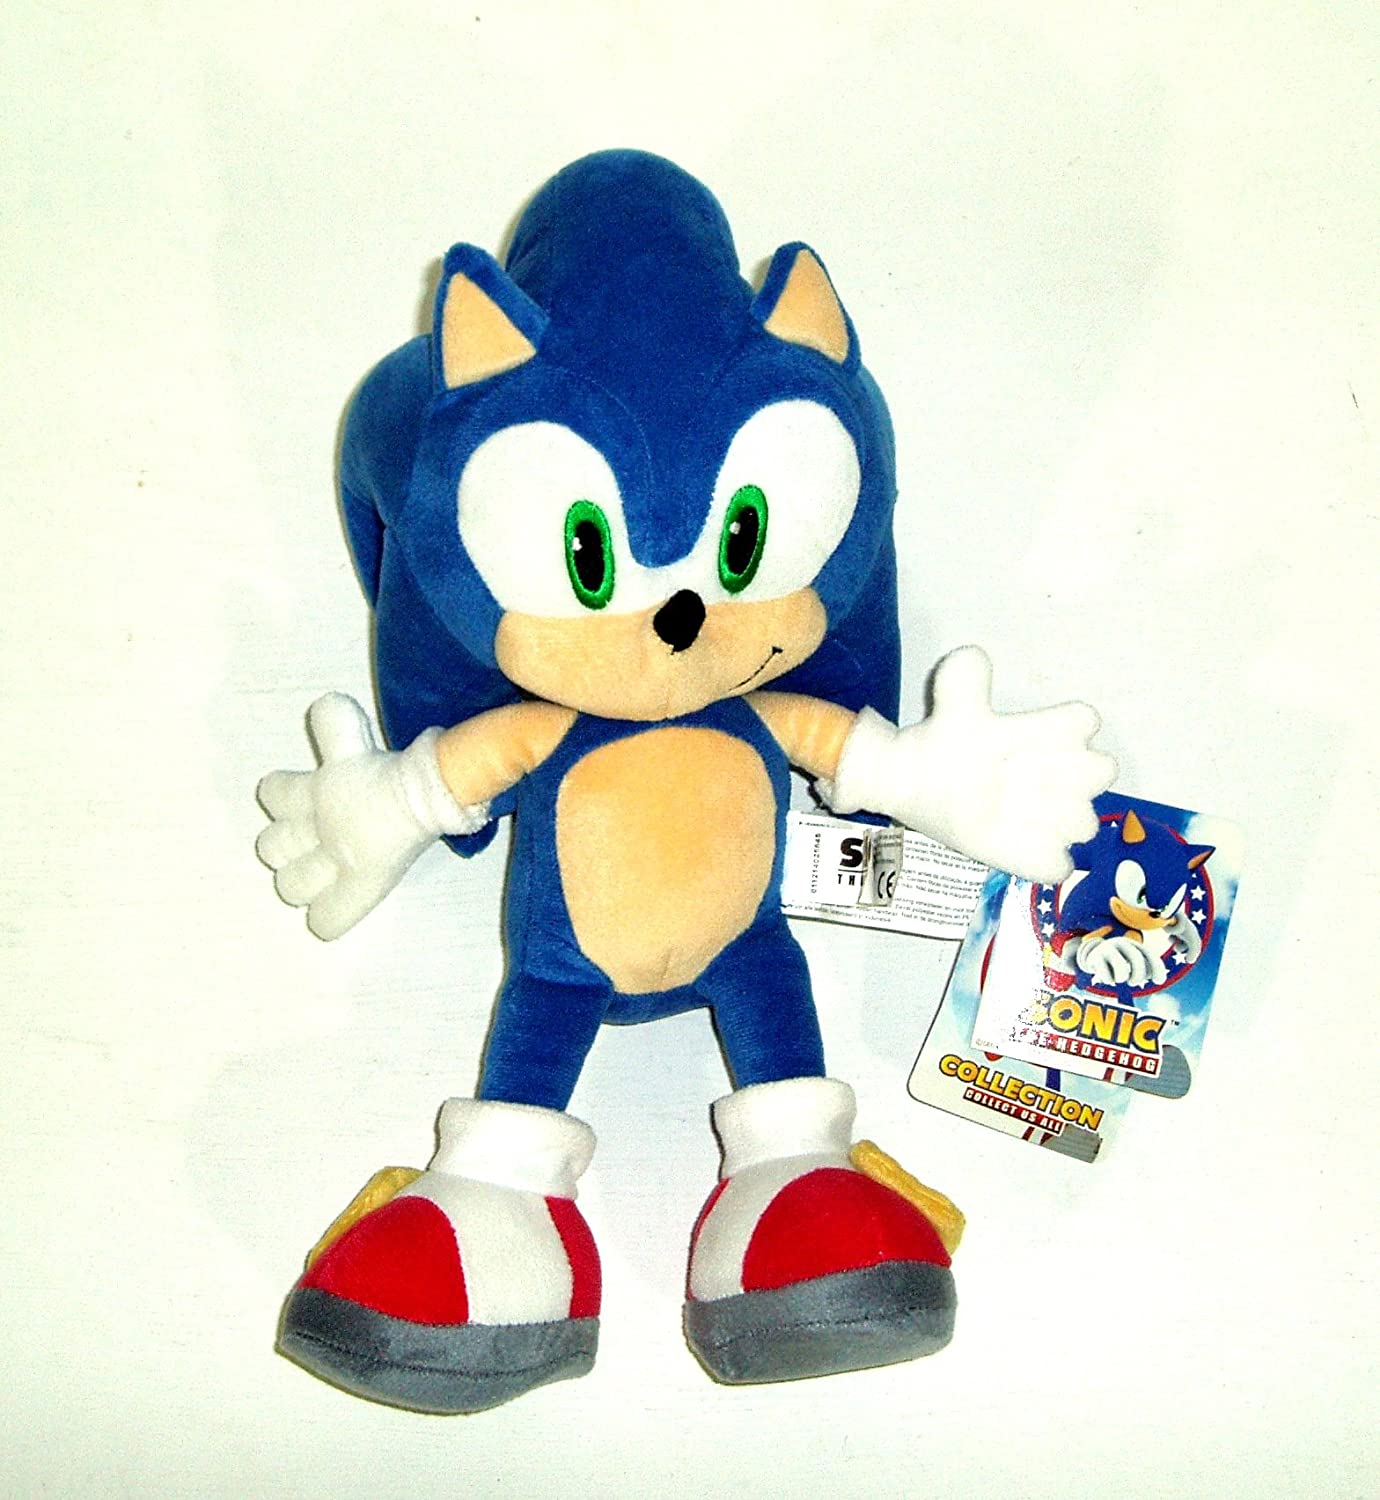 Amazon.com: Sonic The Hedgehog & Friends Full Set 33 Cm Soft Toys: Toys & Games